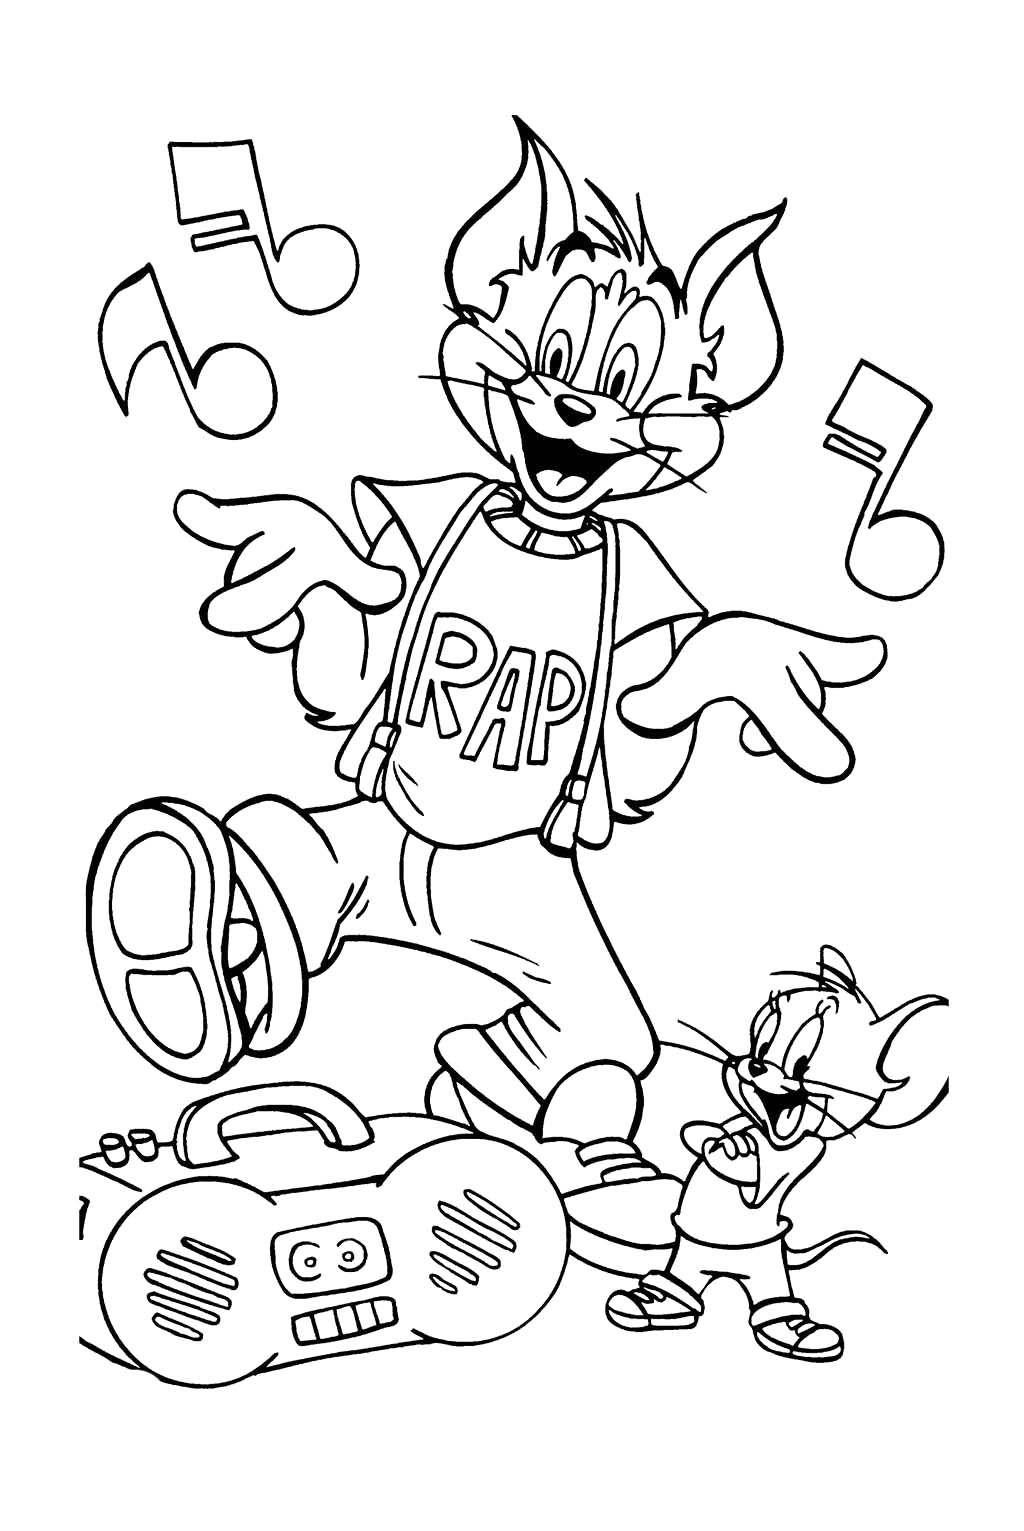 Tom And Jerry Were Singing Along Coloring Page | tom en jerry ...